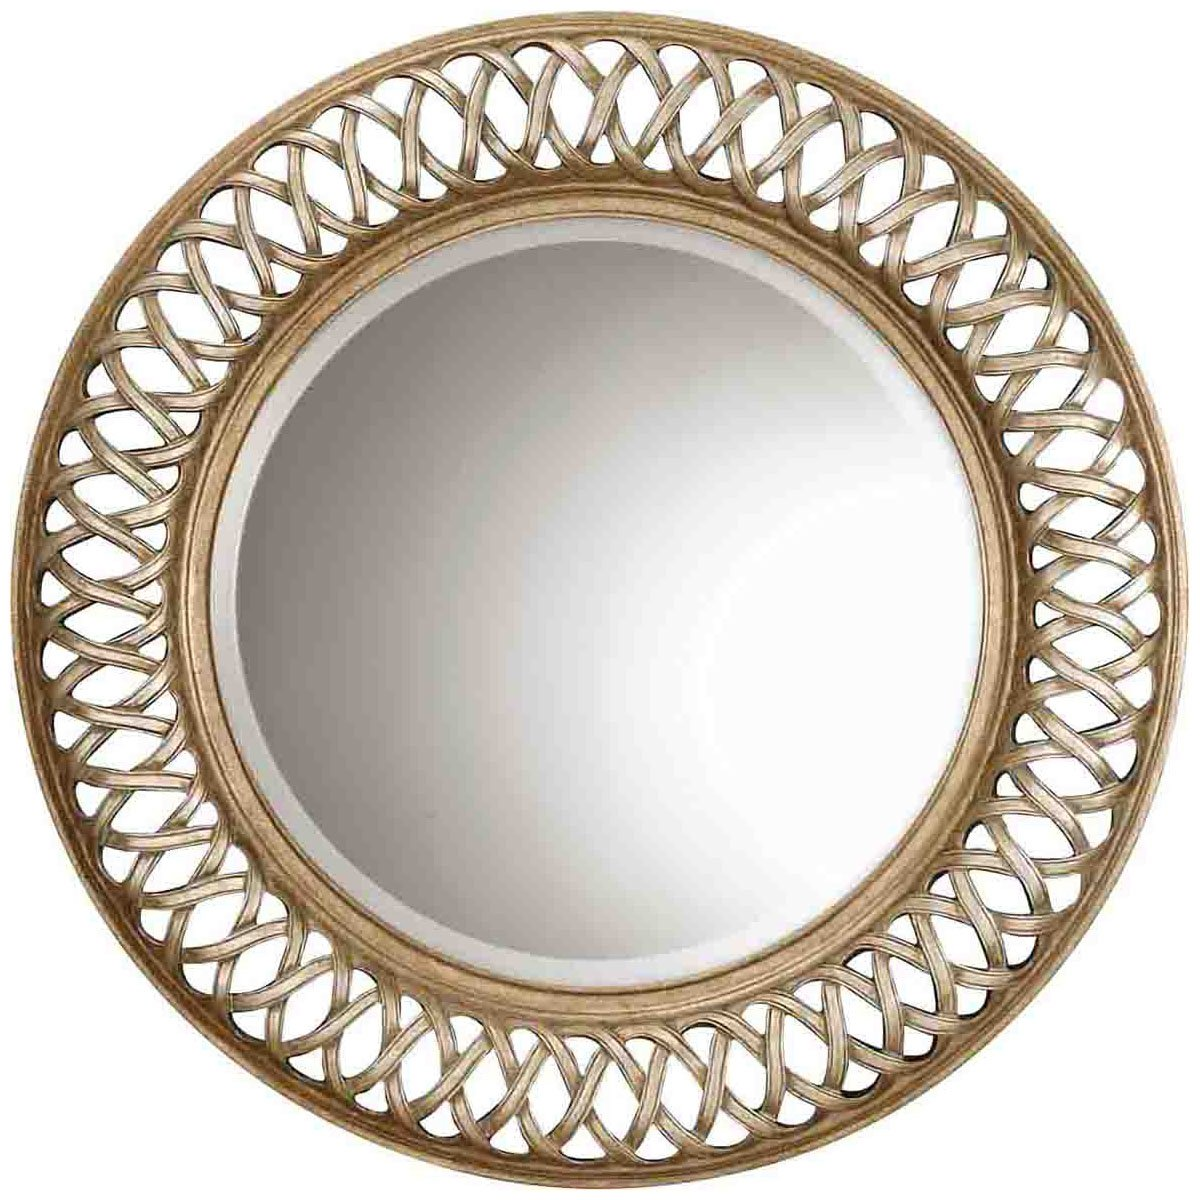 Perfect Amazon.com: Uttermost 14028 B Entwined Mirror, Antique Gold: Home  KC11